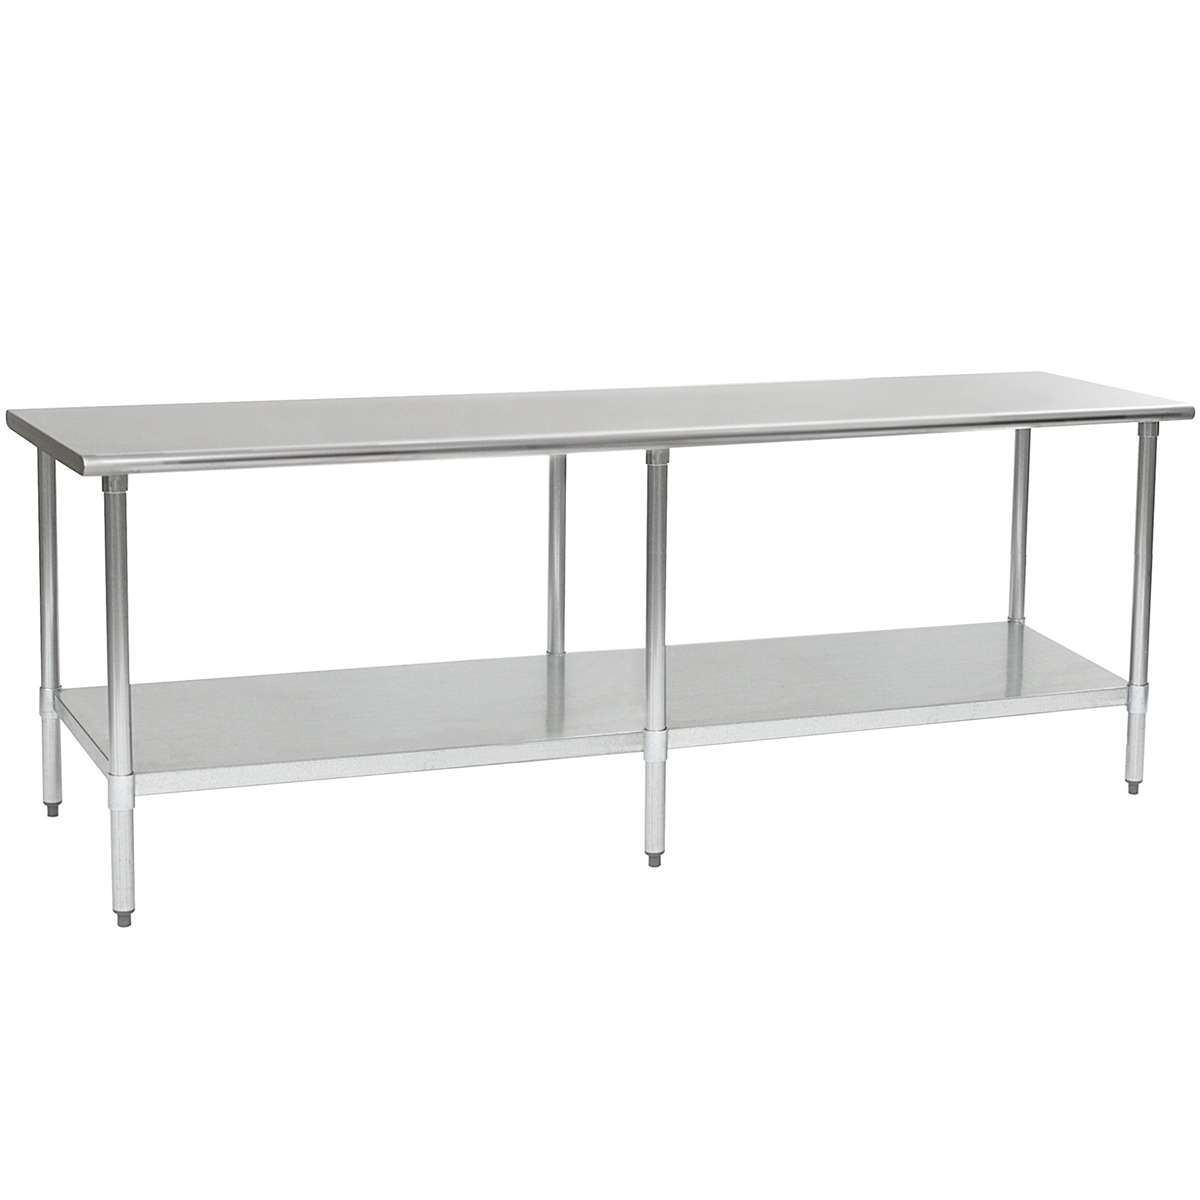 8 Stainless Steel Table Design Ideas